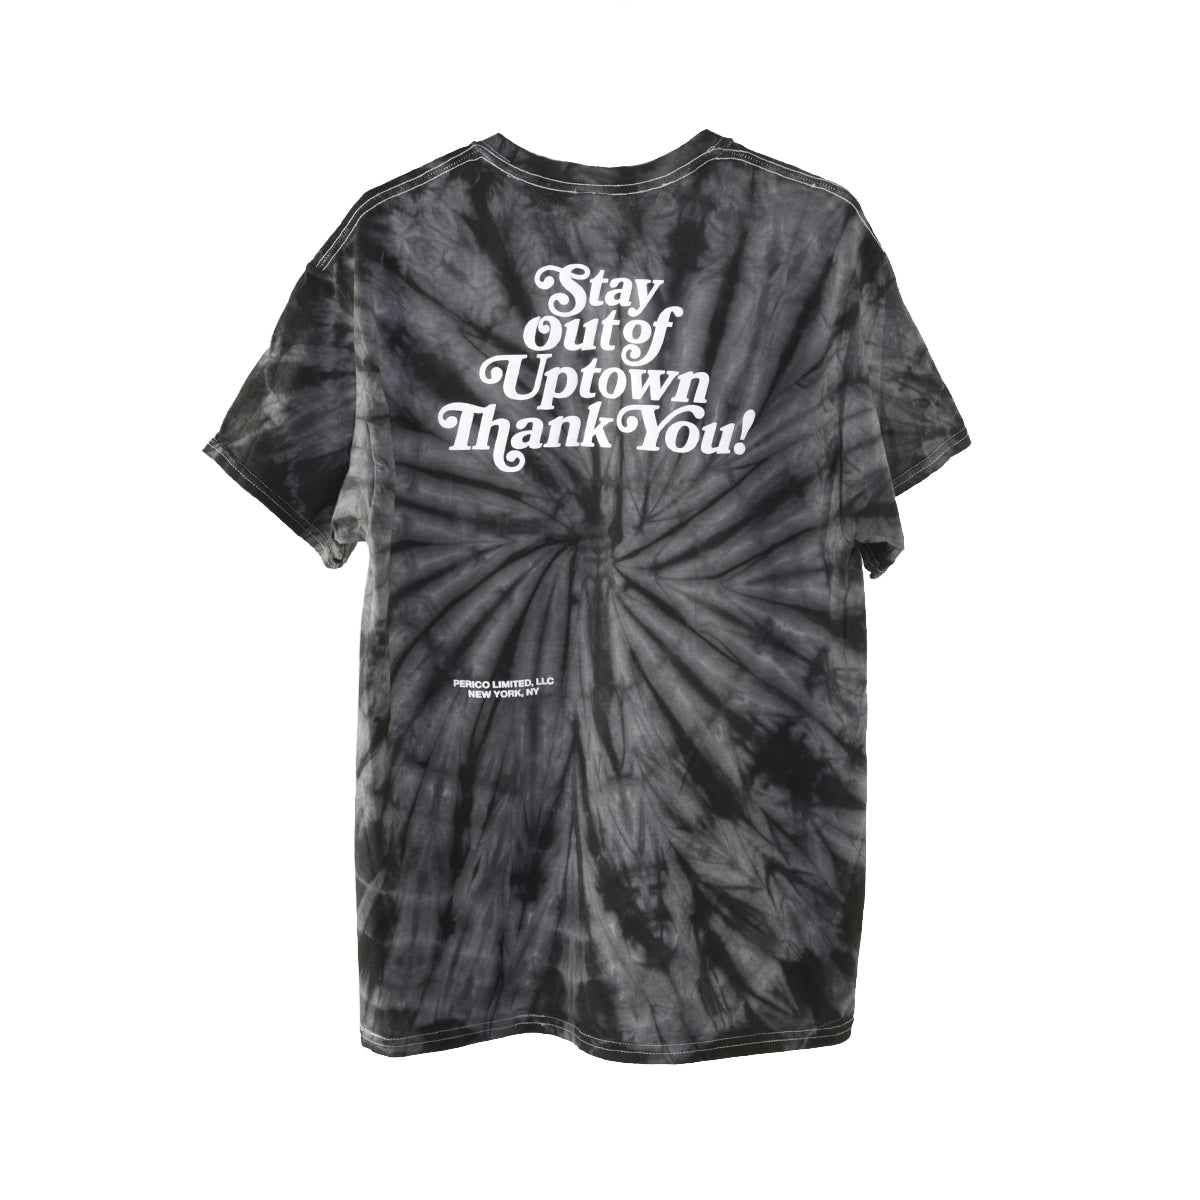 Stay Out of Uptown tie dye - Spider Black